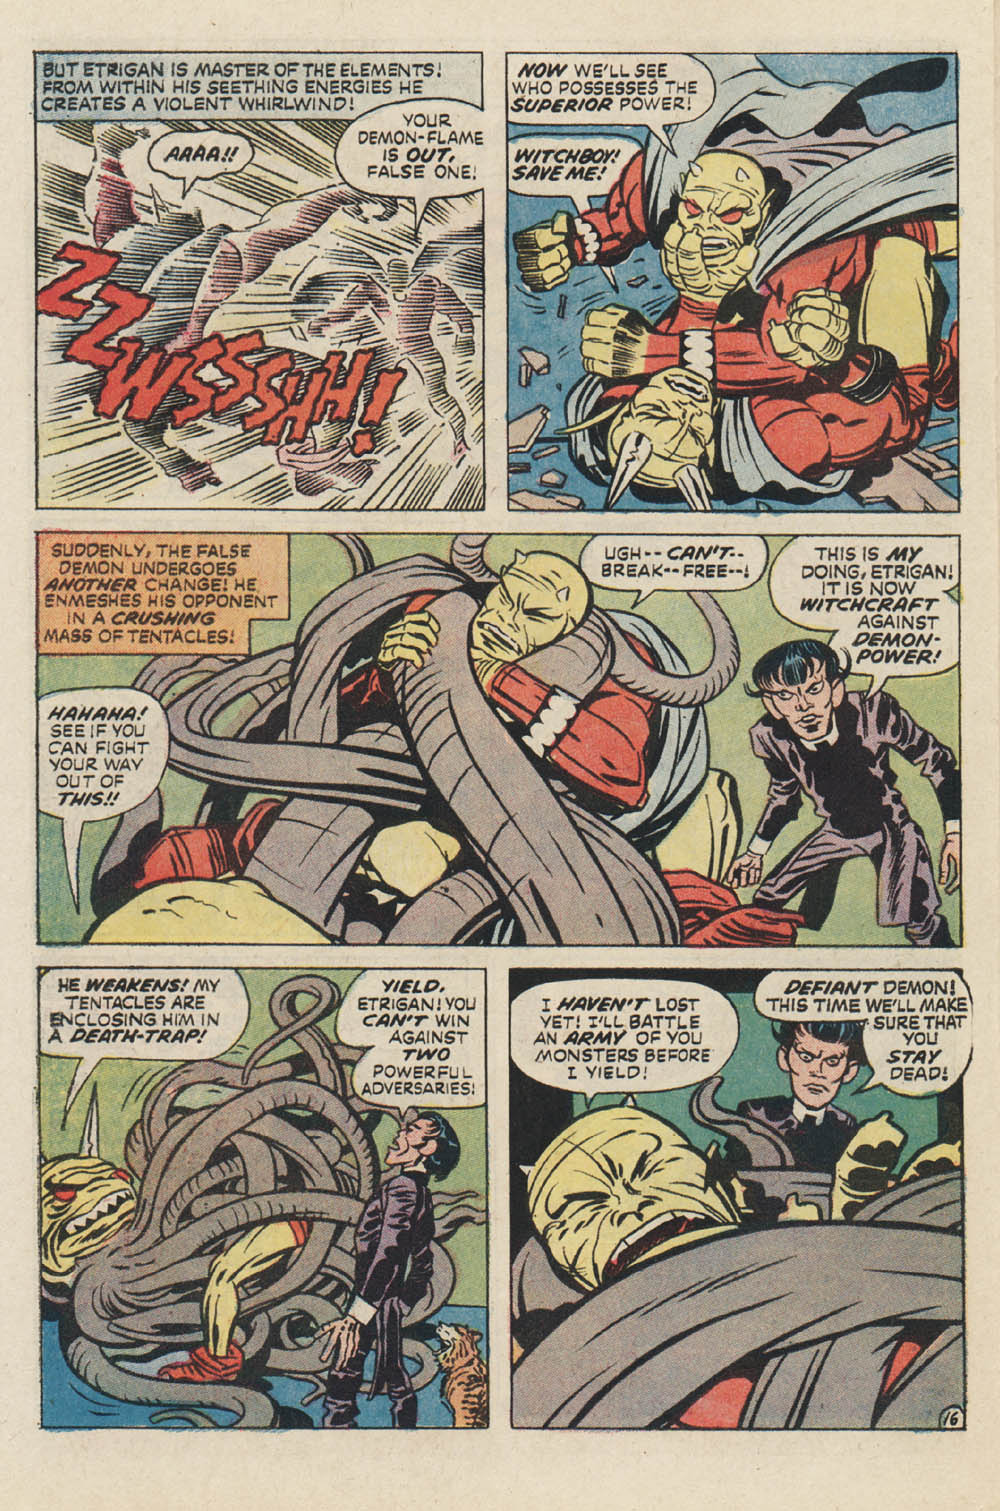 Jack Kirby says he is a Master of elements and he makes a magical whirlwind